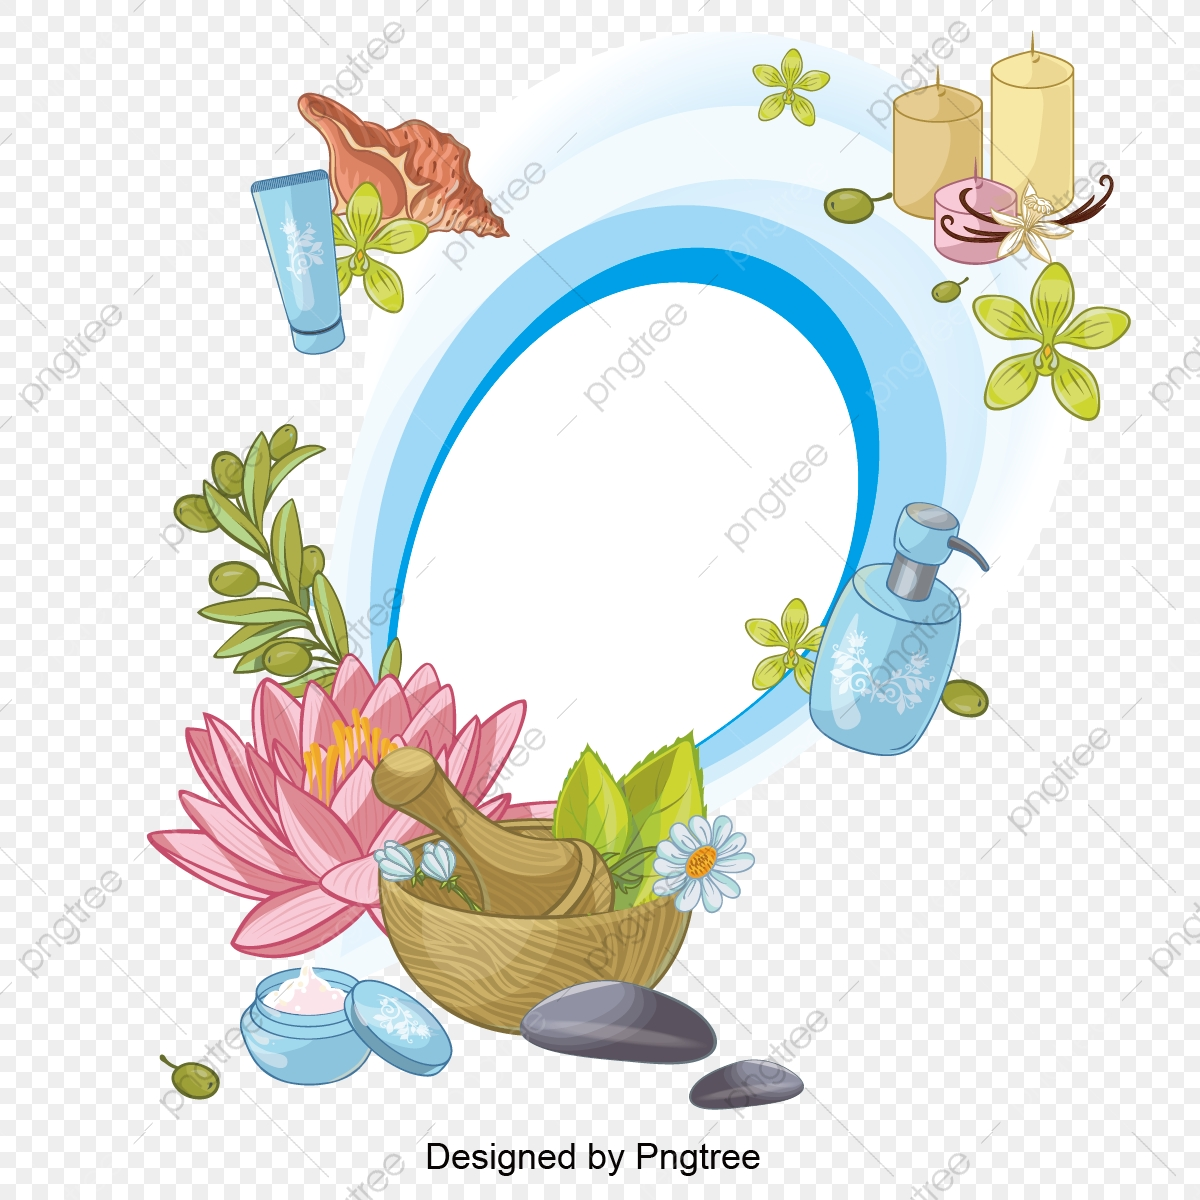 Simple Cartoon Spa Care Element Design Spa Wellness Aromatherapy Png And Vector With Transparent Background For Free Download